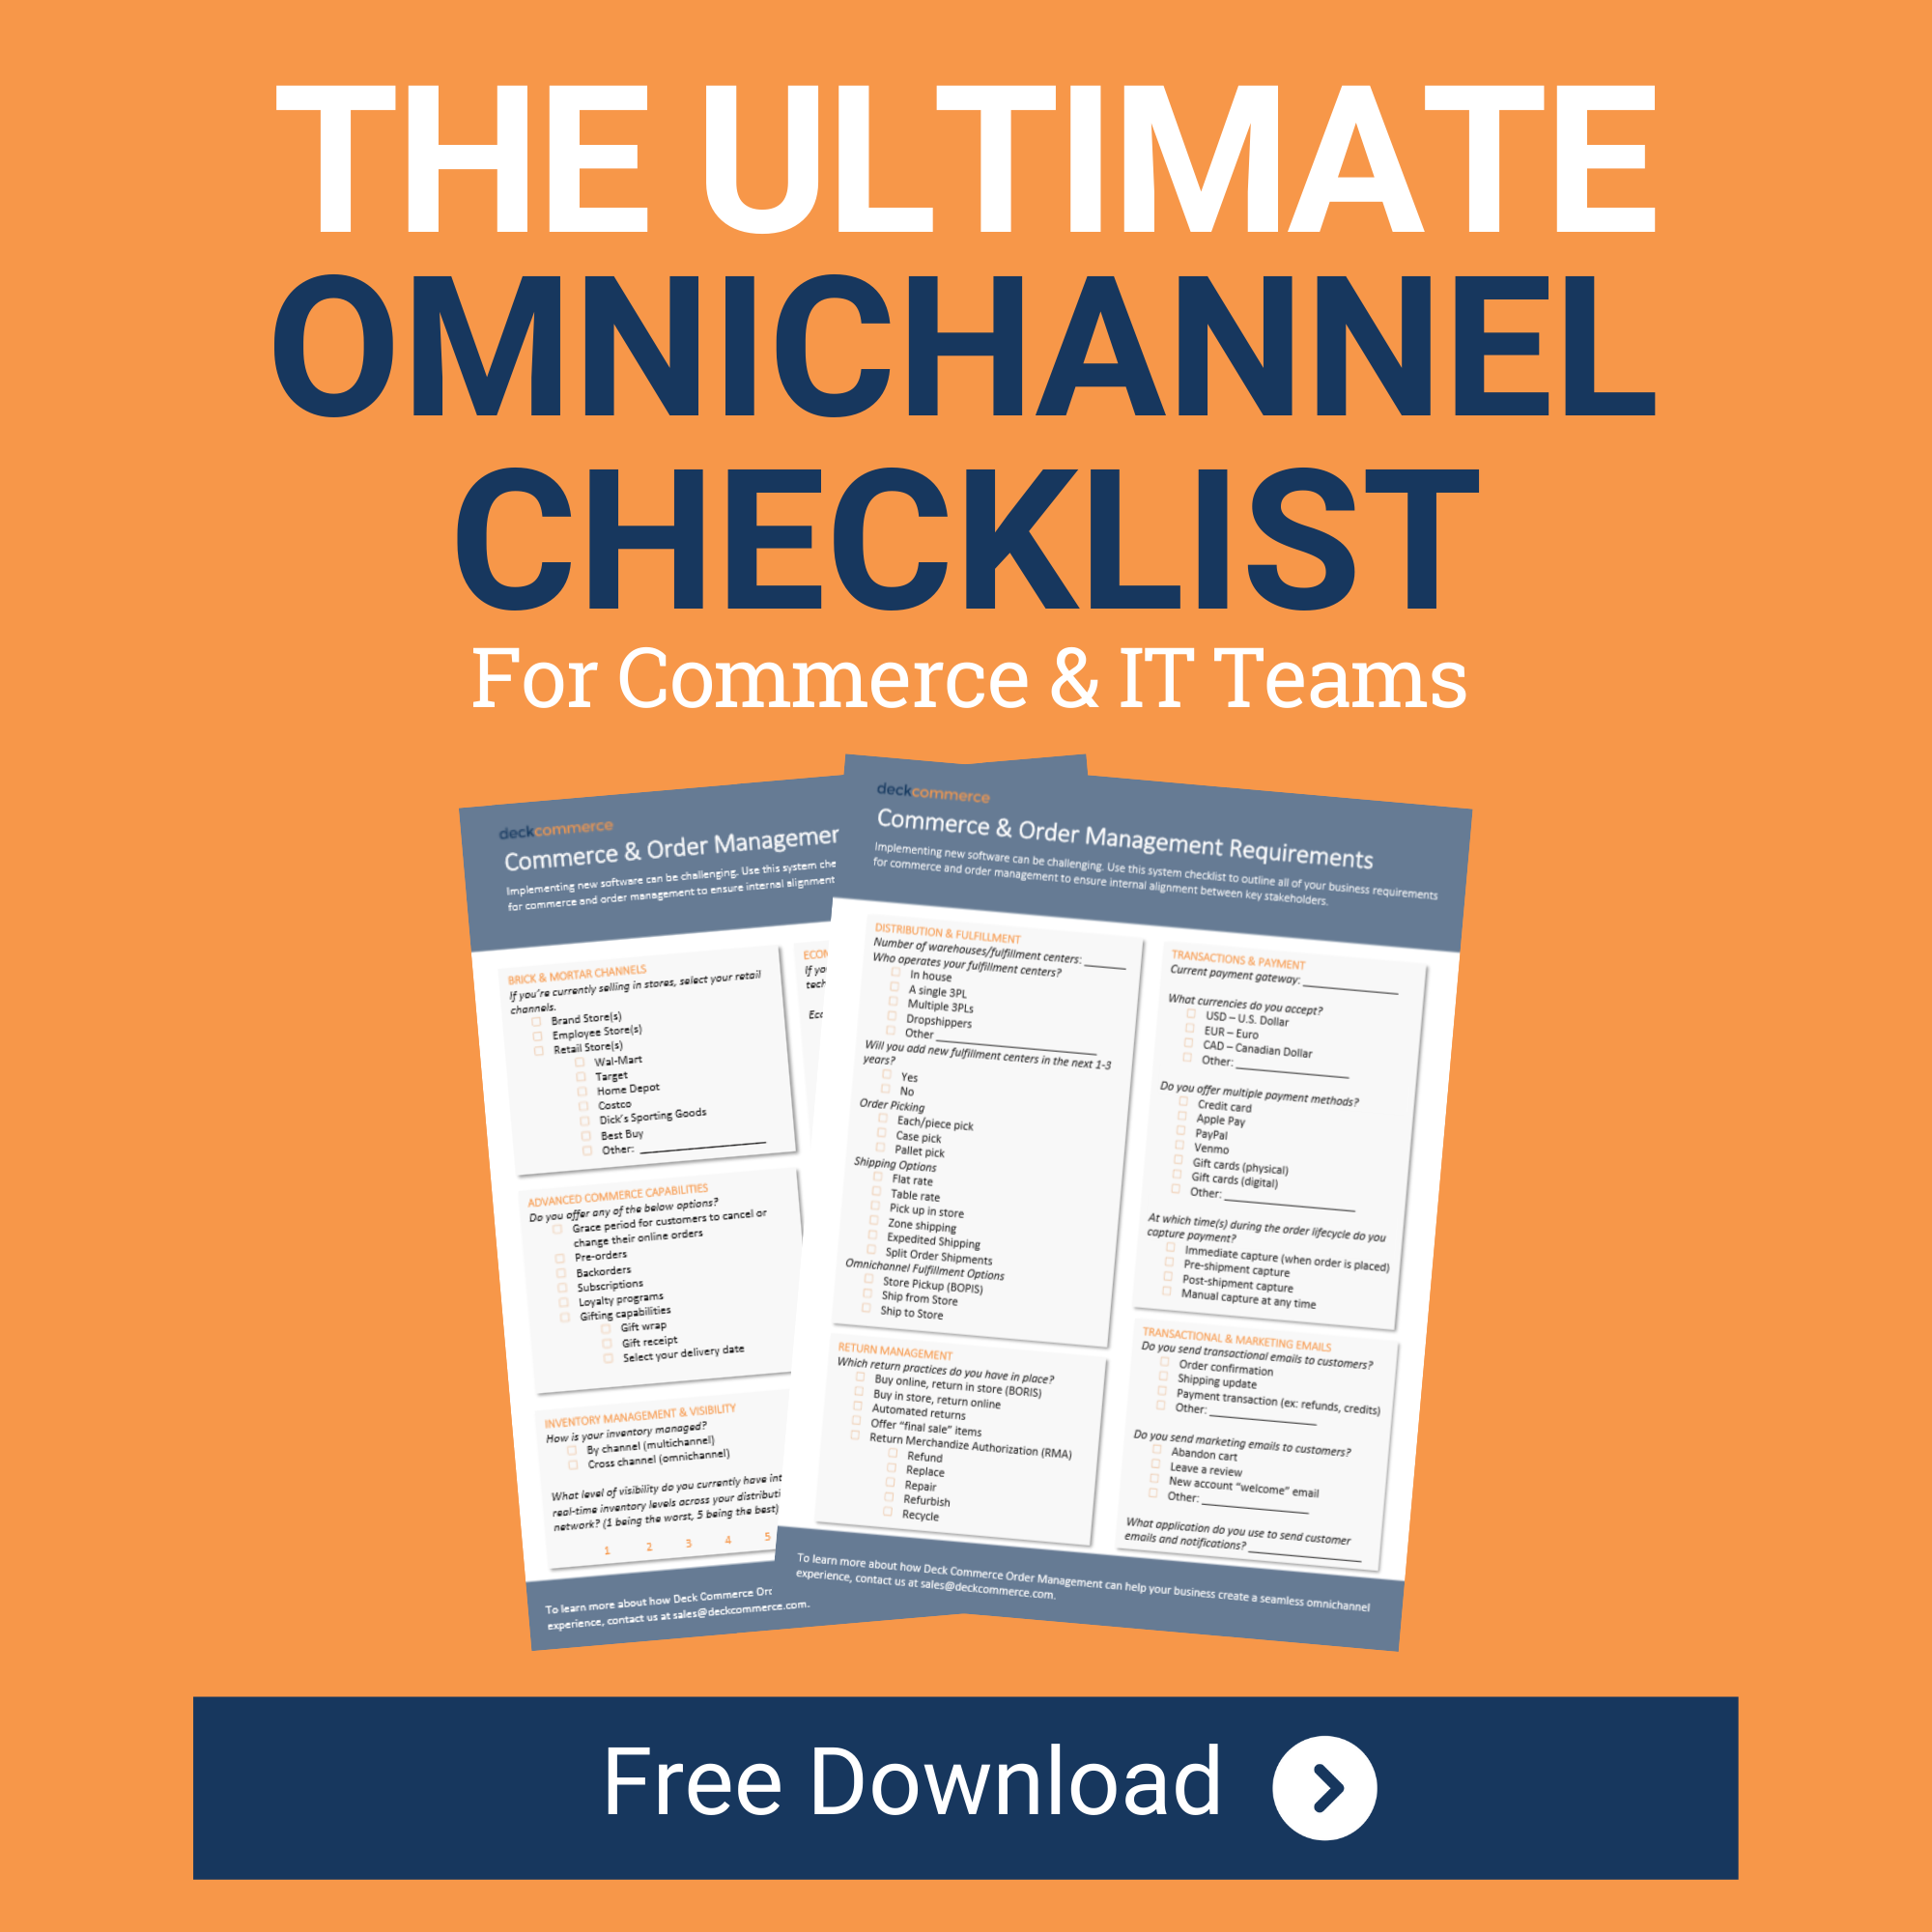 omnichannel checklist download